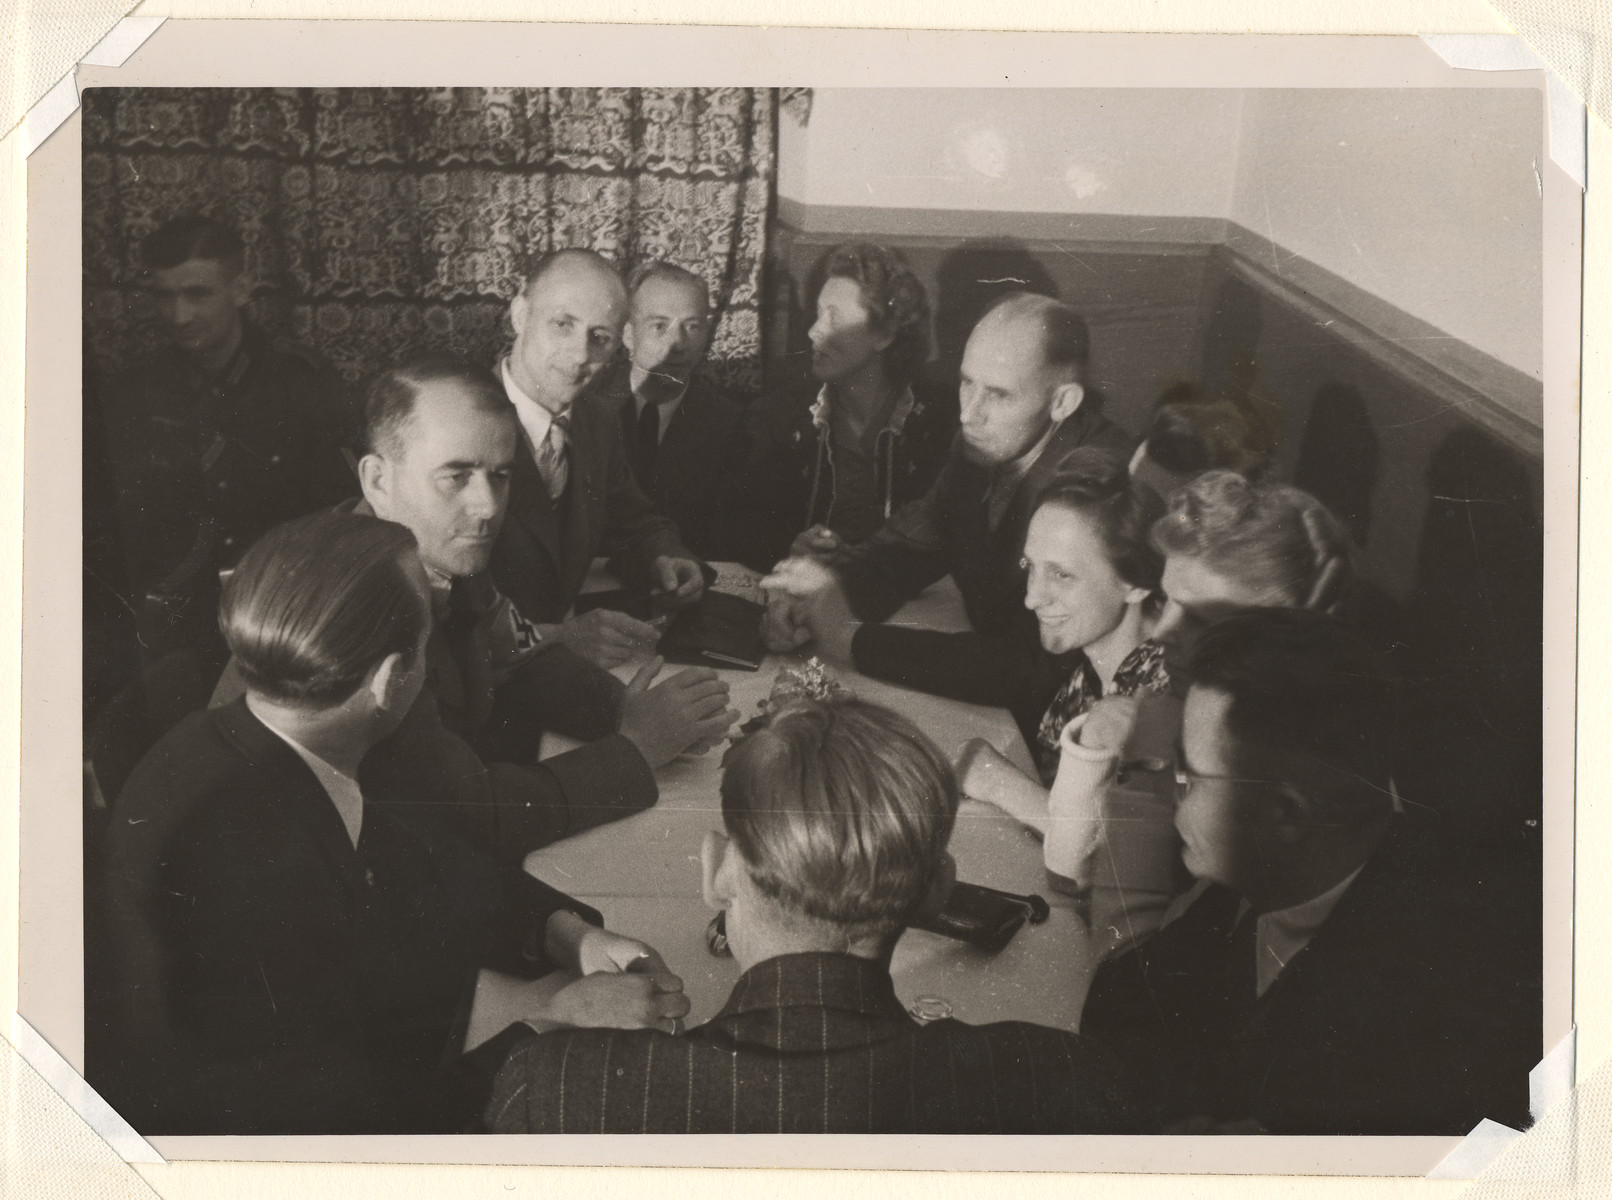 Albert Speer sits around a table with a group of unidentified people.